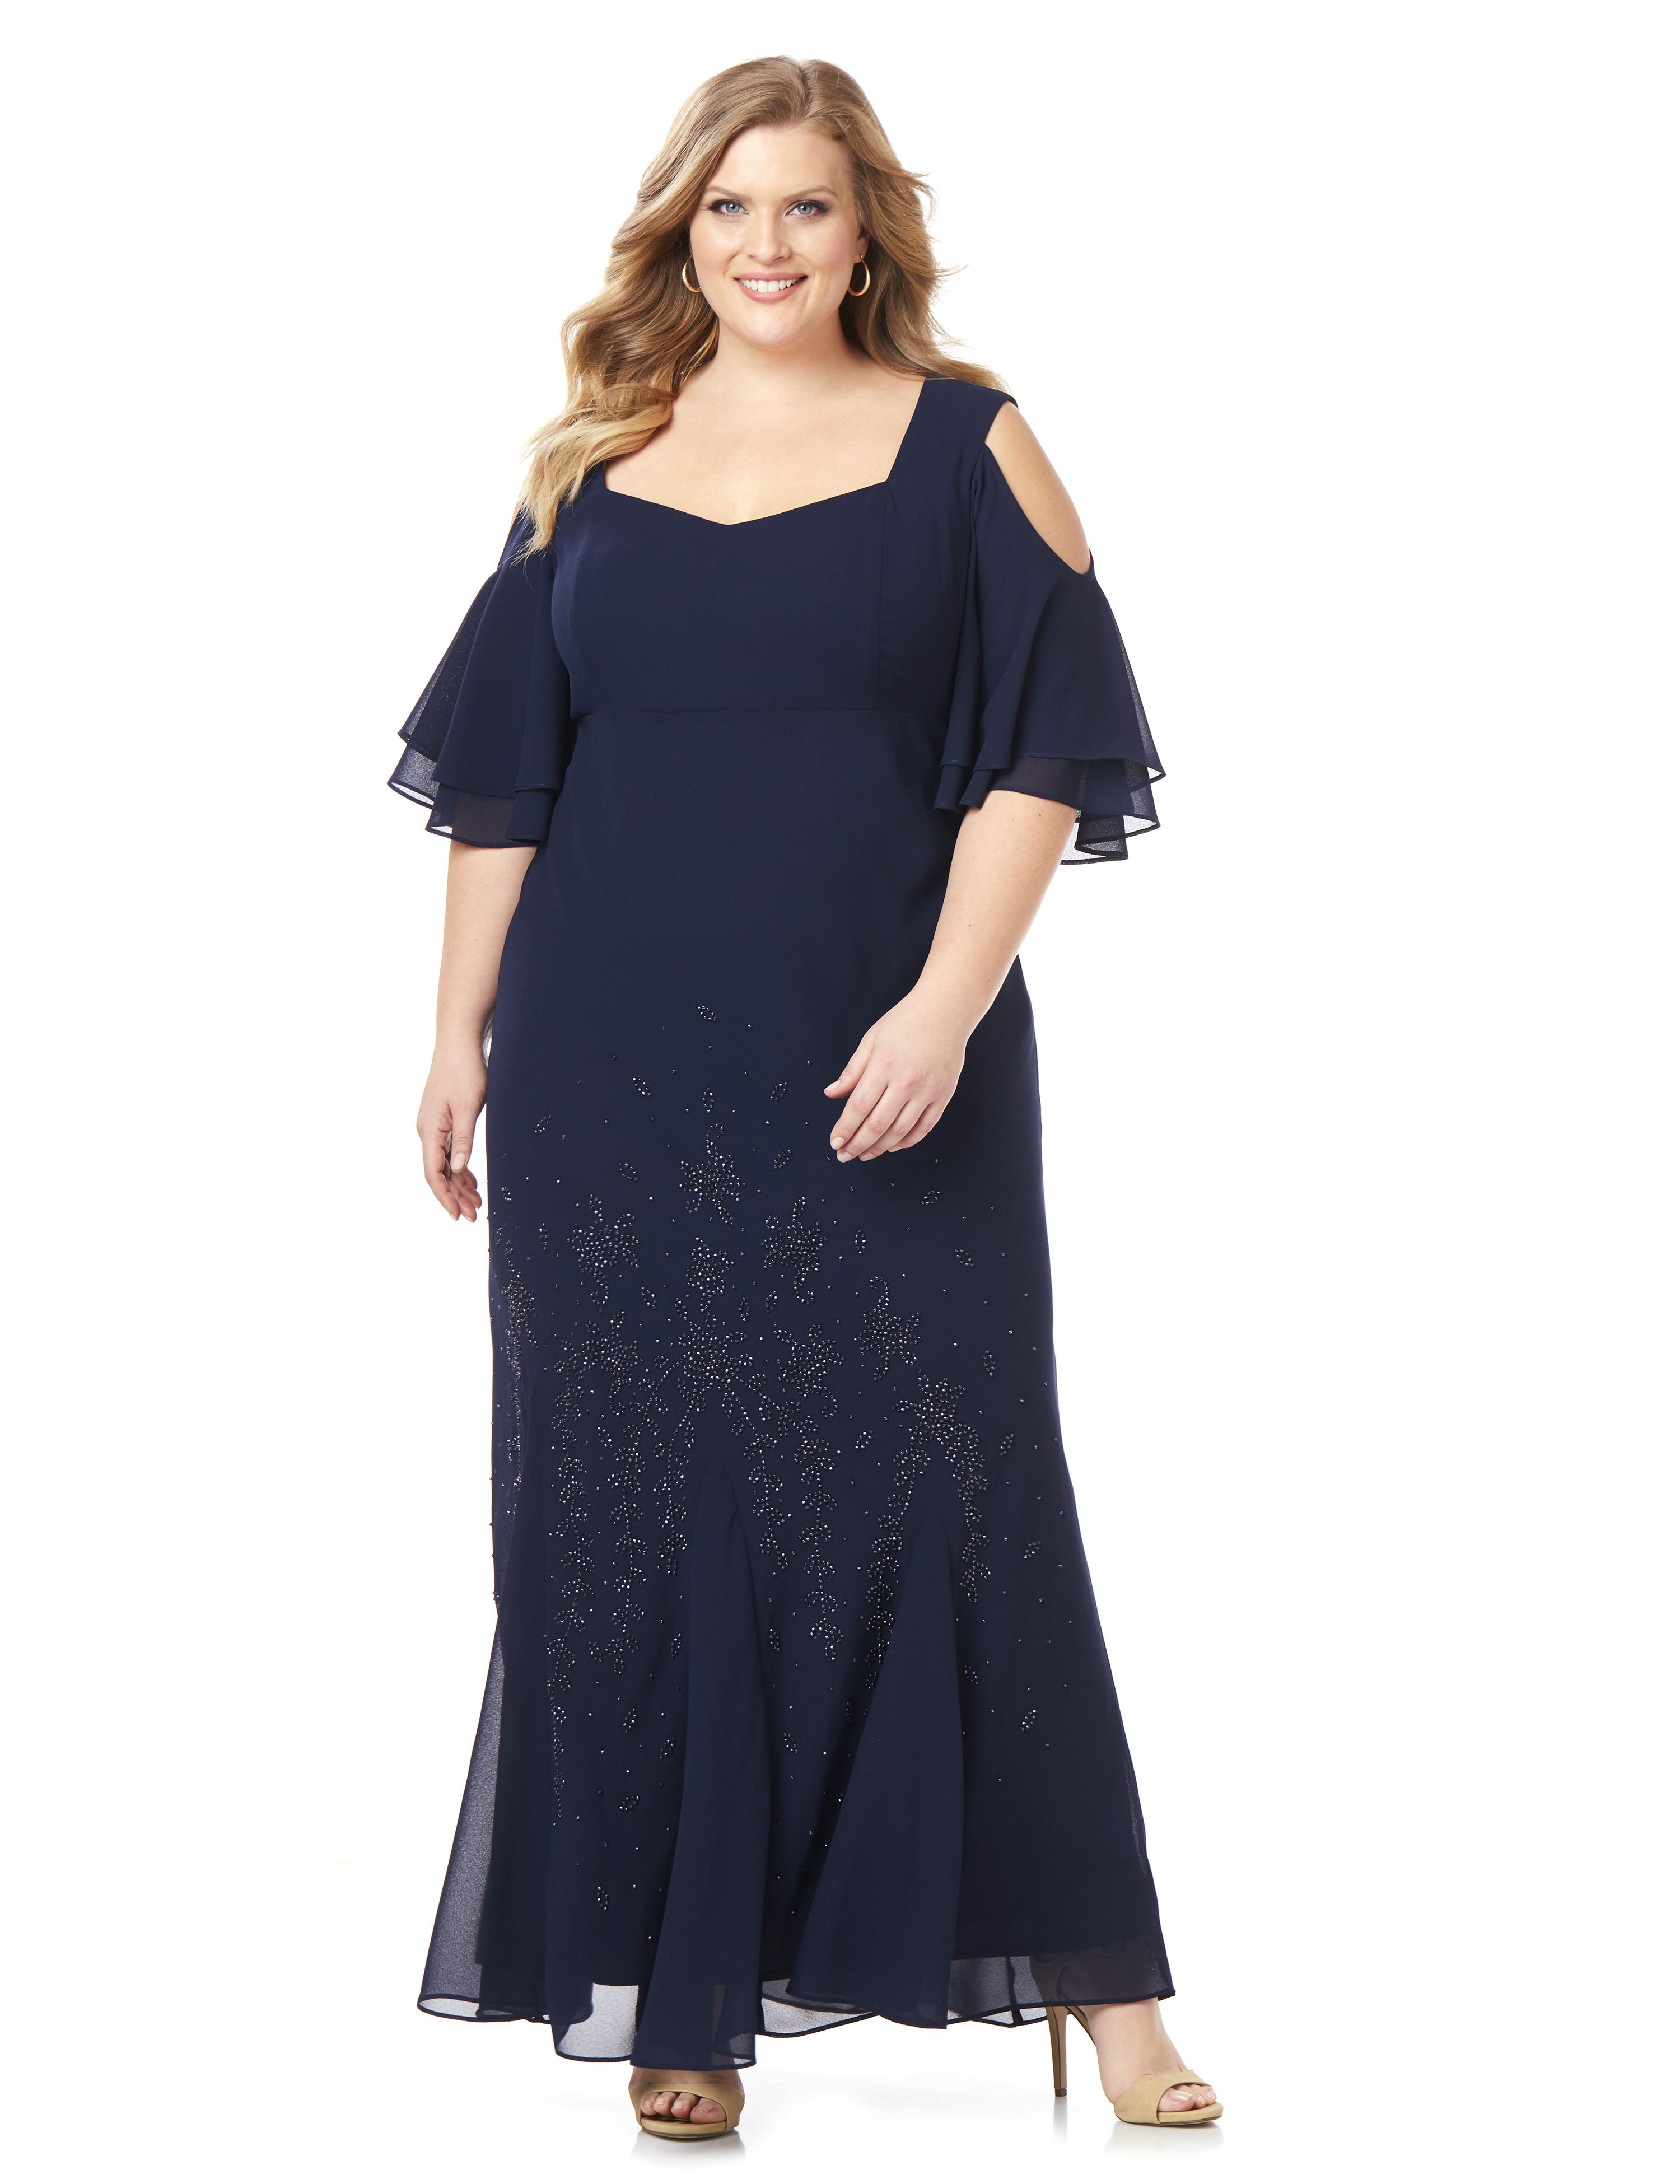 Plus Size Formal Dresses - Evening Dresses & Gowns | Catherines